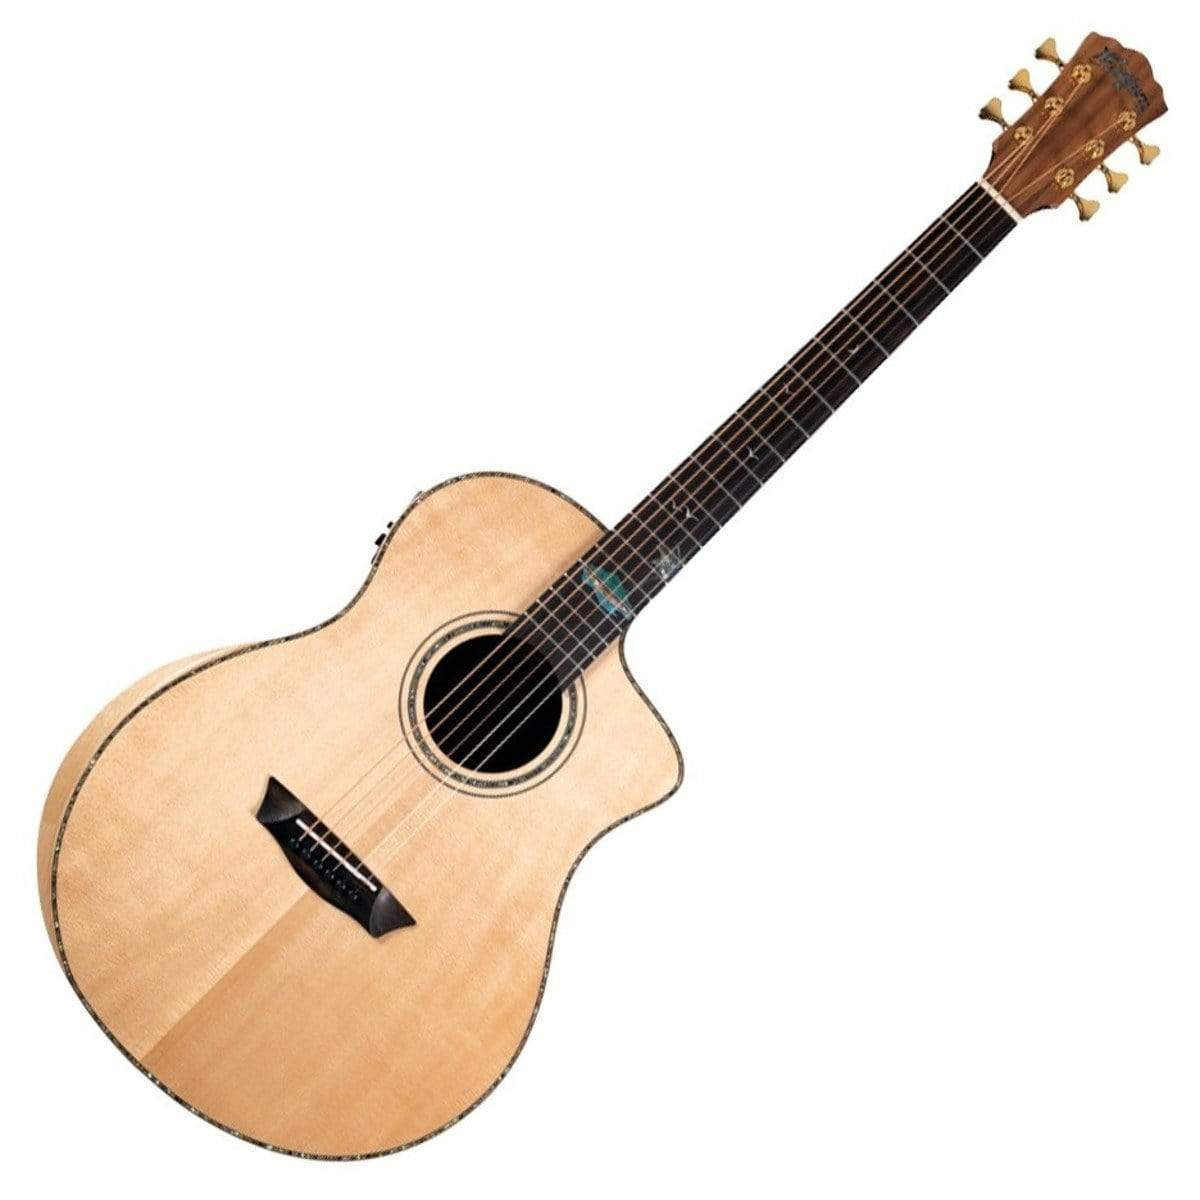 Washburn BTSC56S Bella Tono Allure Semi-Acoustic Guitar - Gloss Natural